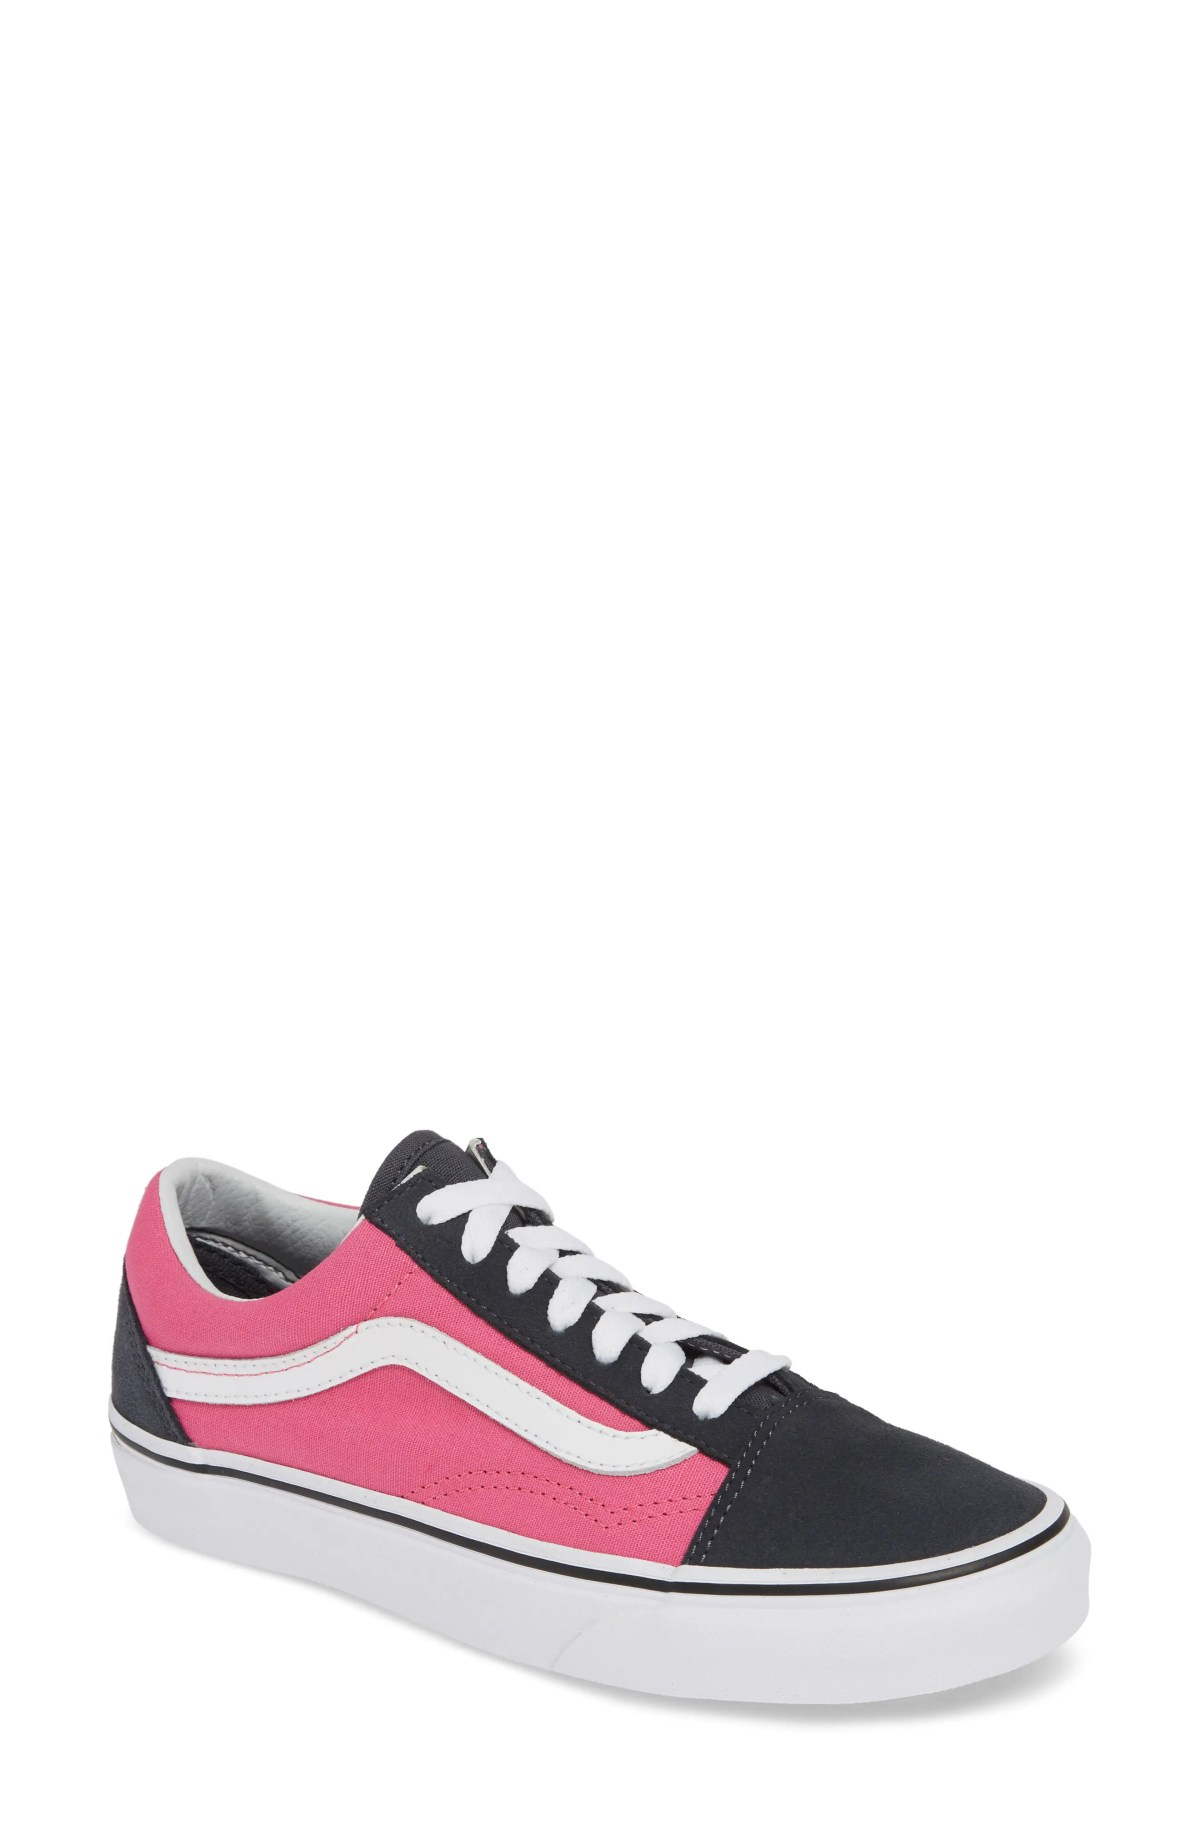 VANS Old Skool Sneaker, Main, color, 2-TONE EBONY/ CARMINE ROSE